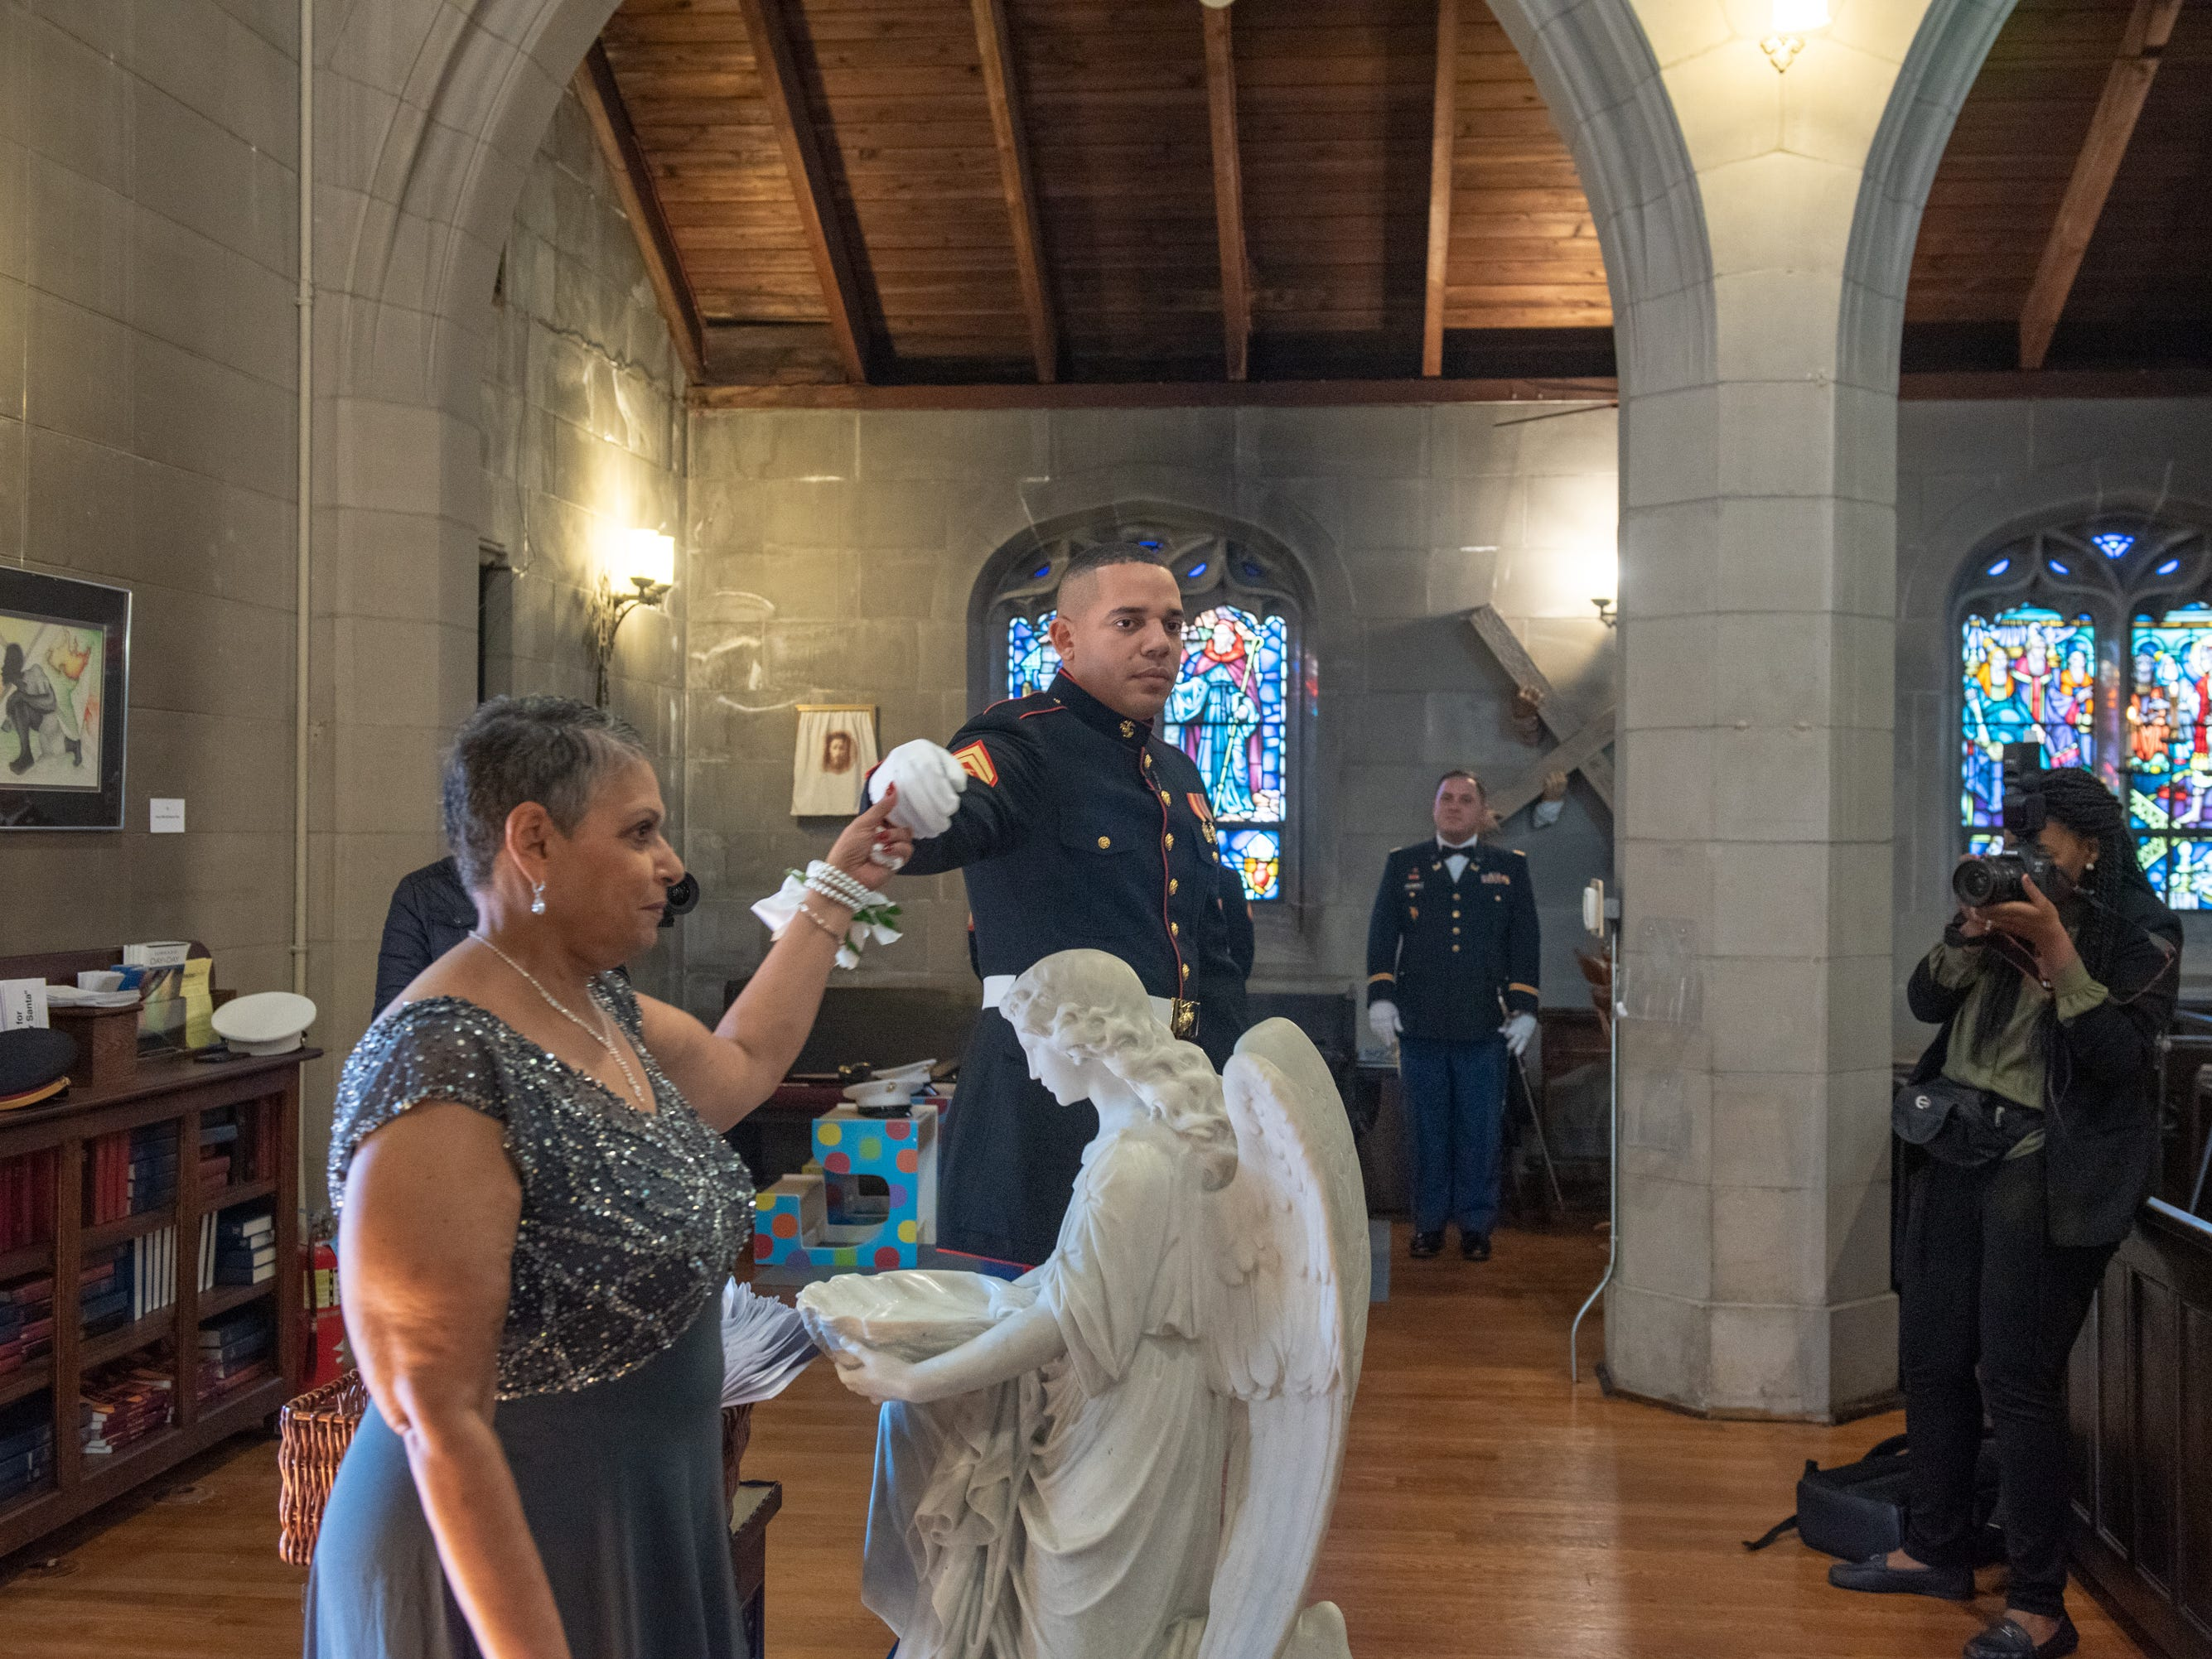 Christian Fuscarino, (not pictured) Executive Director of Garden State Equality, and U.S. Marines Corporal Aaron Williams (pictured here entering) were married at Trinity Church in Asbury Park on Sunday, November 11, 2018.